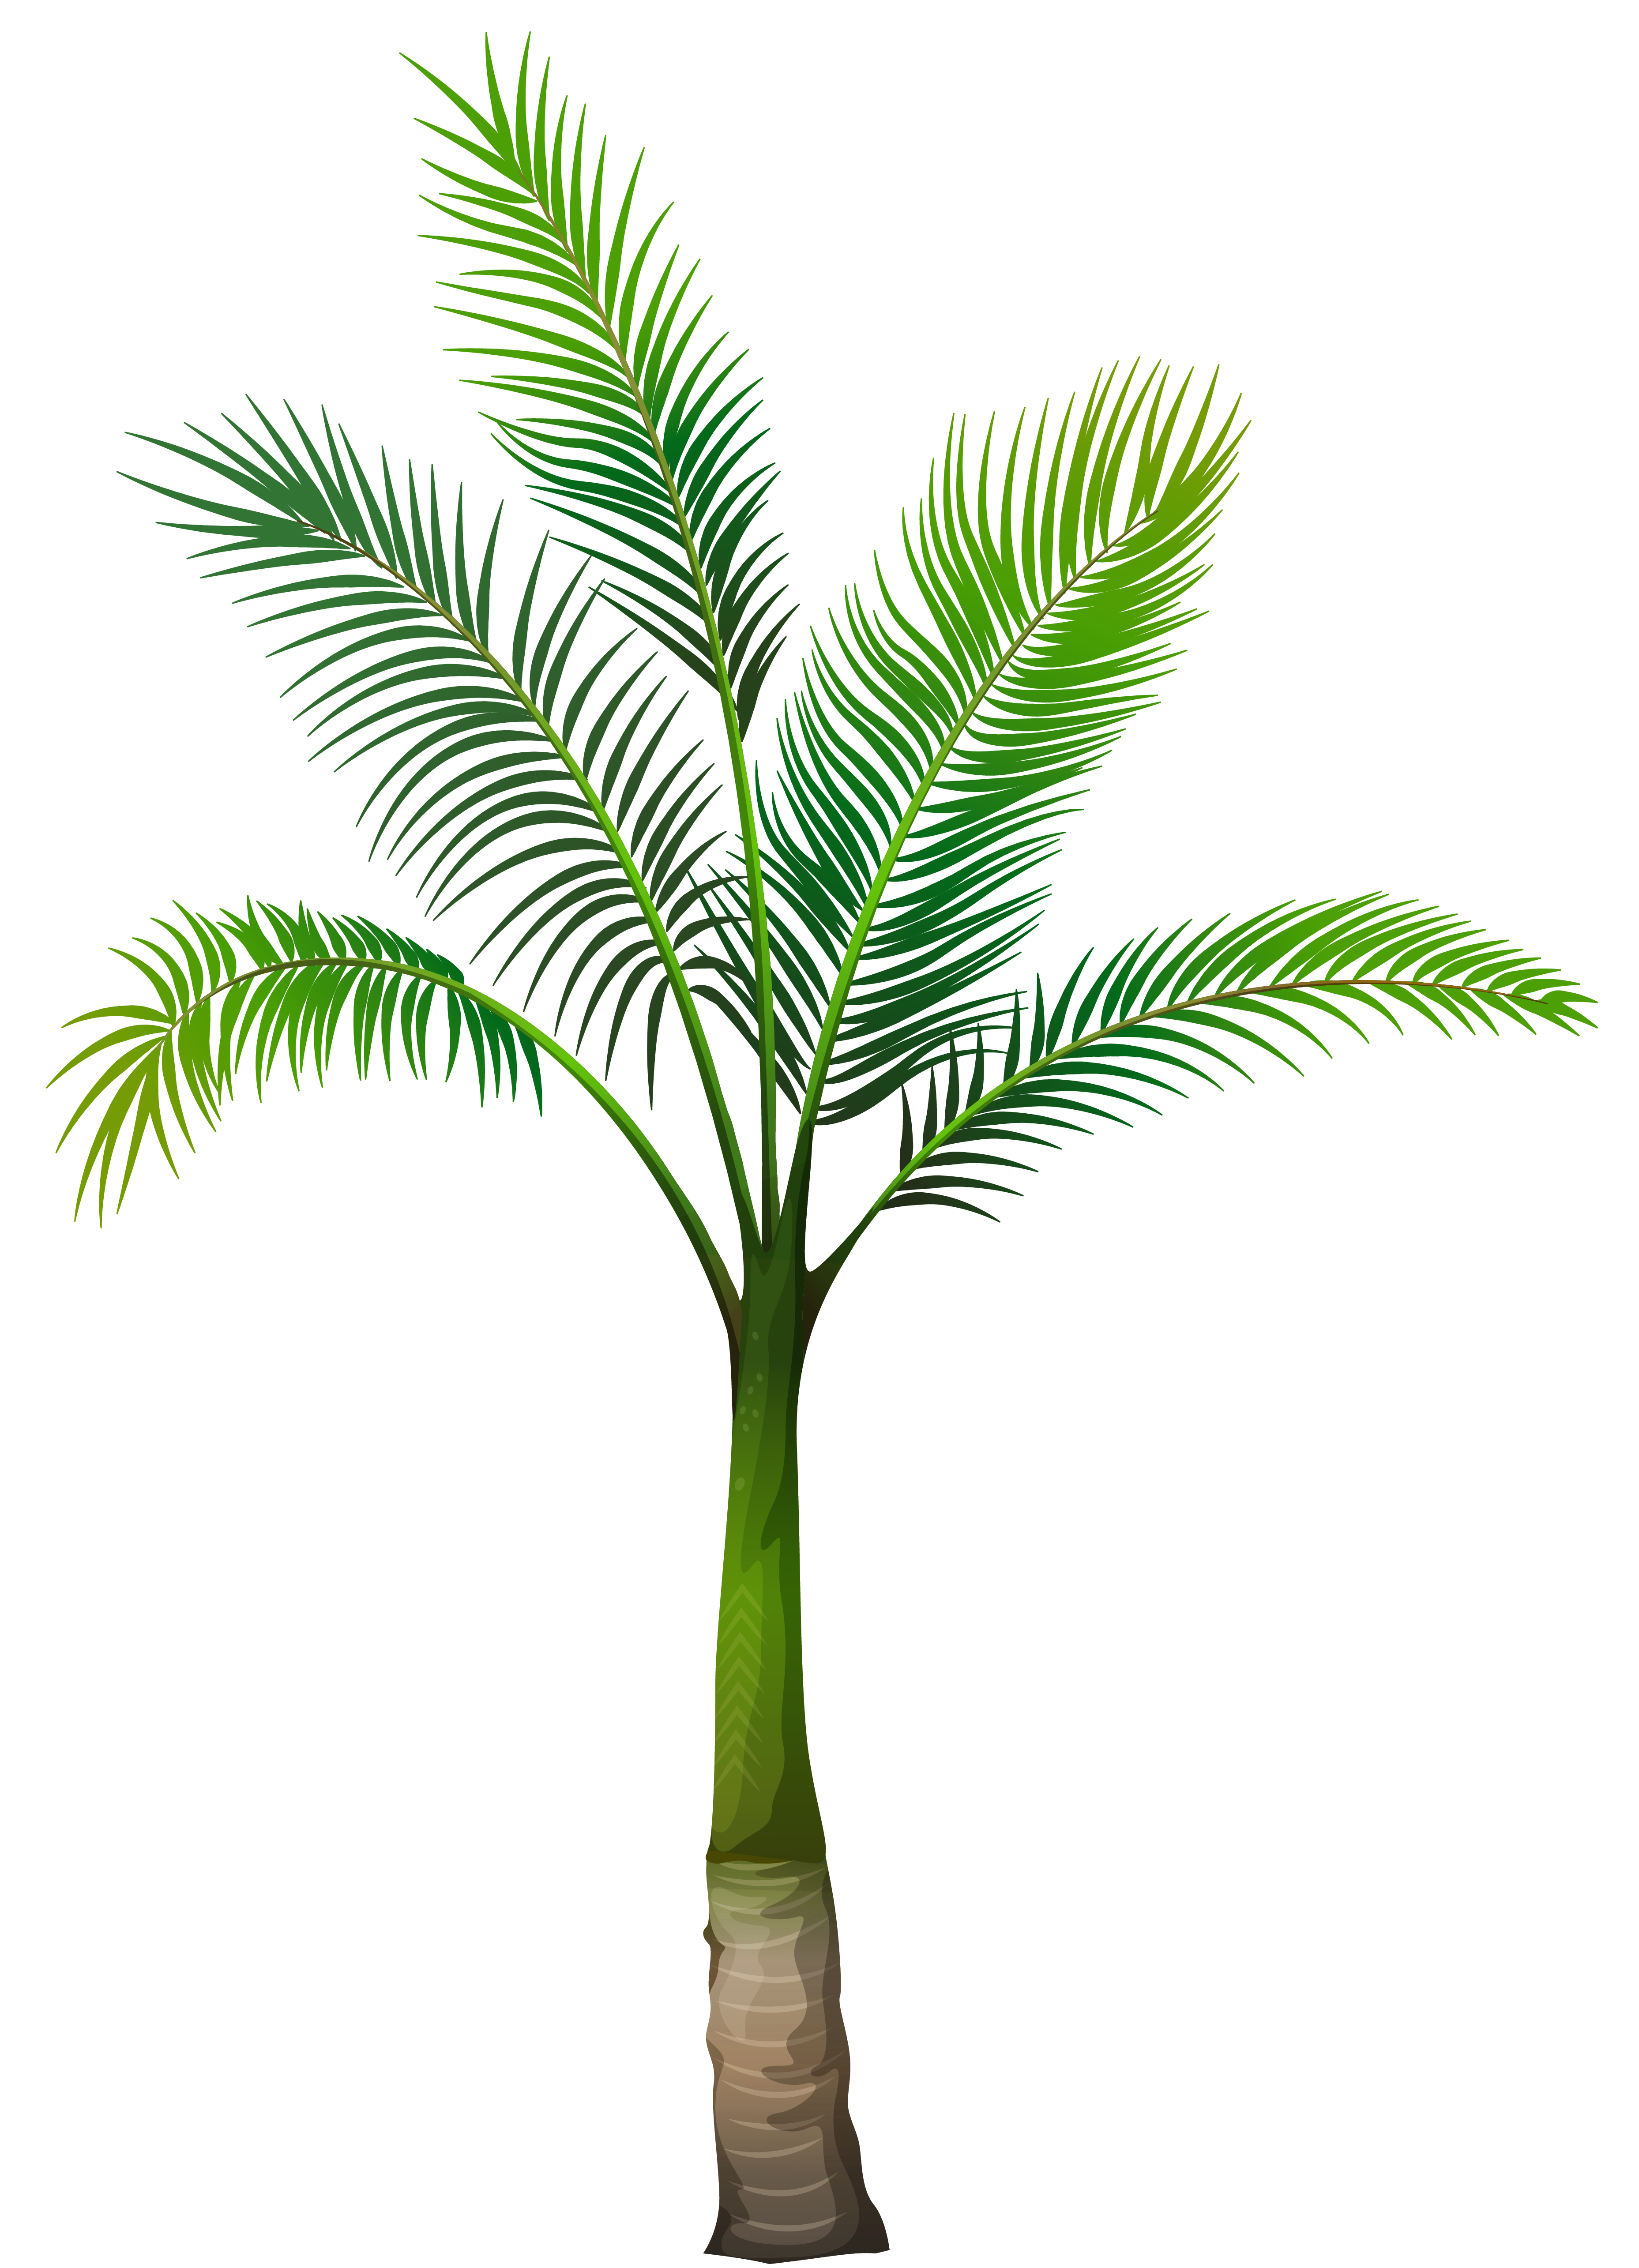 Palm tree png transparent. Image gallery yopriceville high